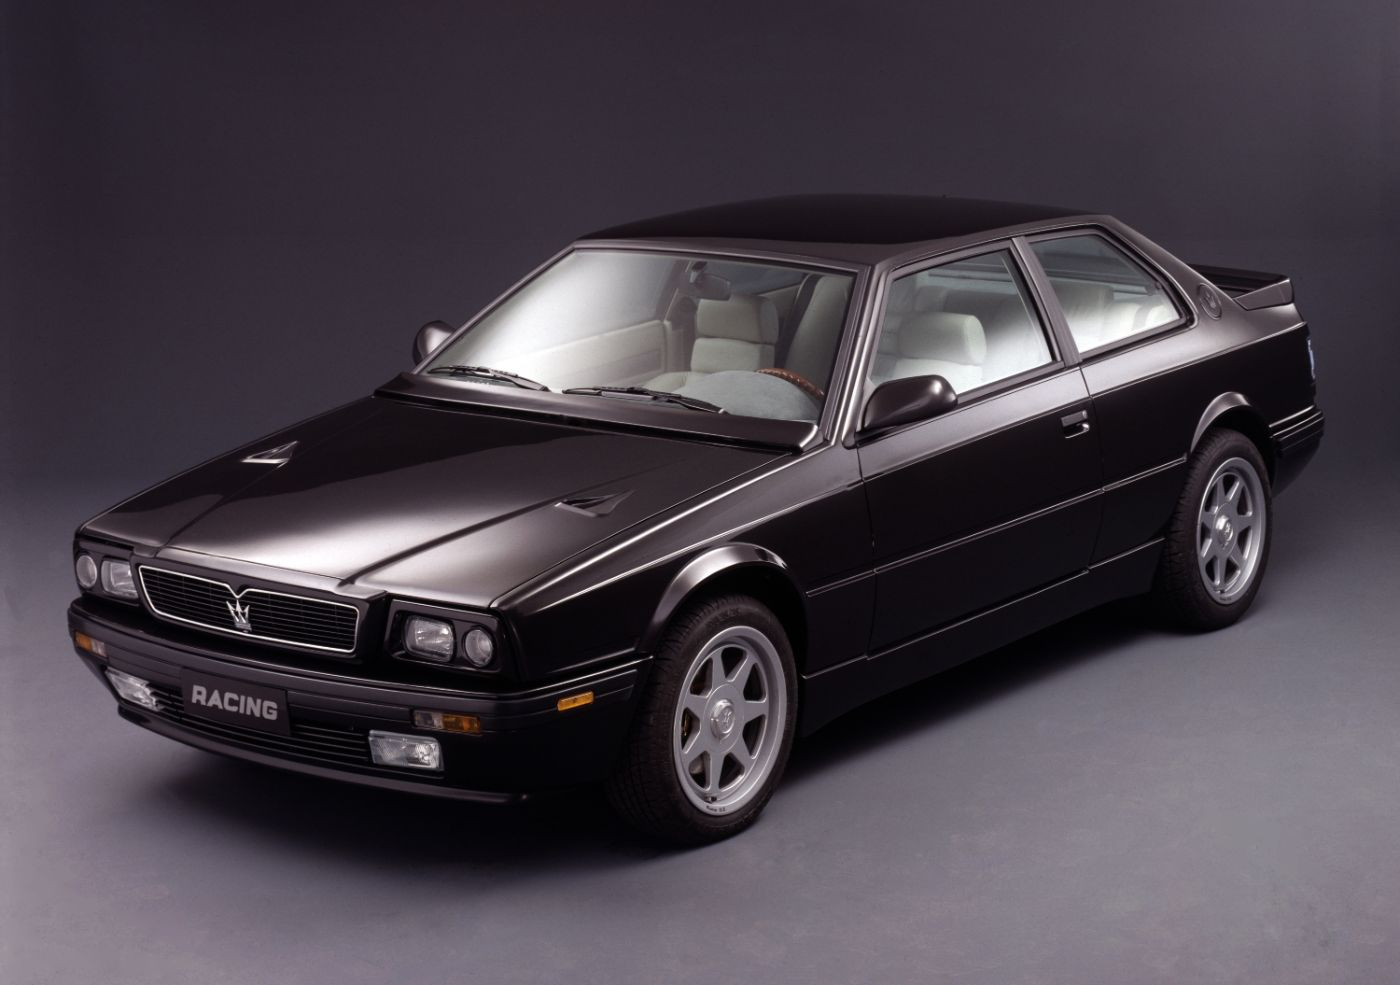 1990 Maserati Racing - exterior view of the classic car in black